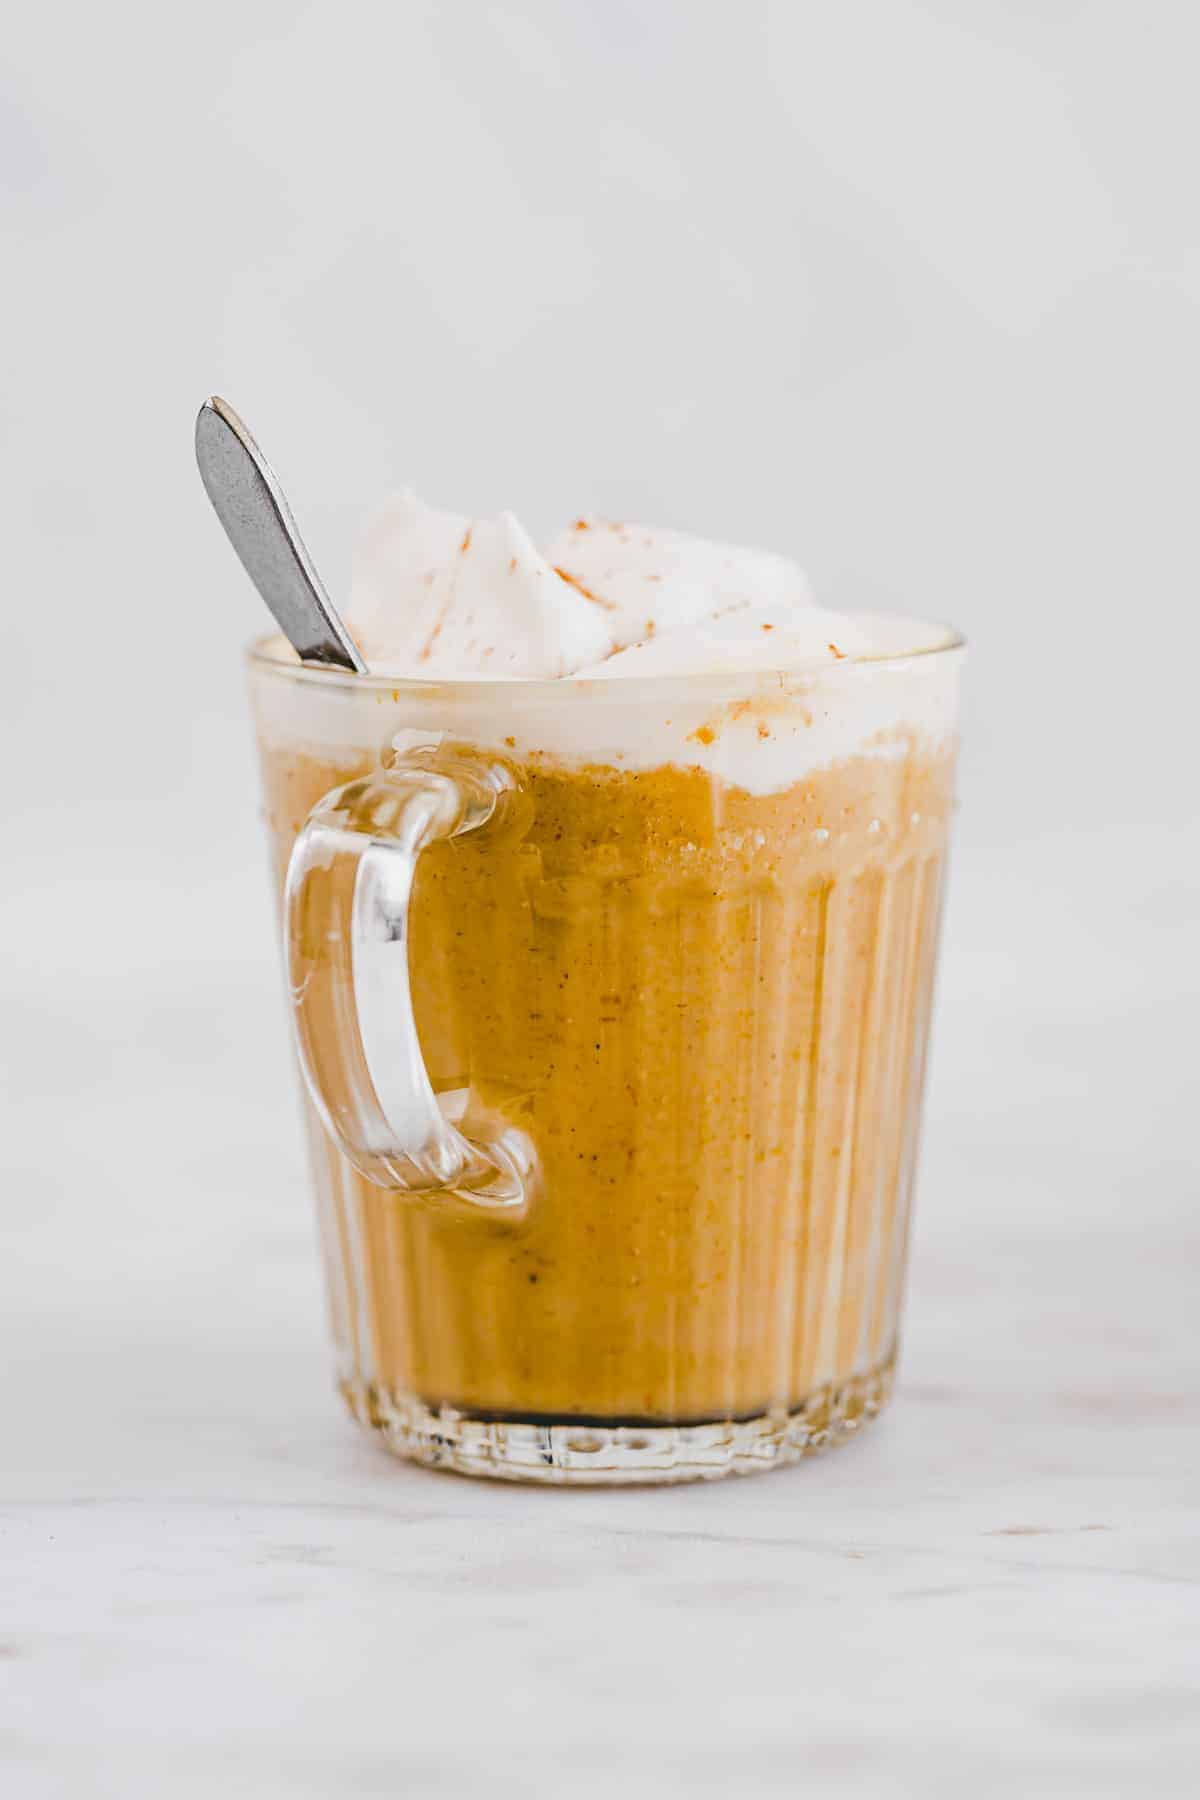 pumpkin spice latte with dairy-free whipped cream in a glass mug